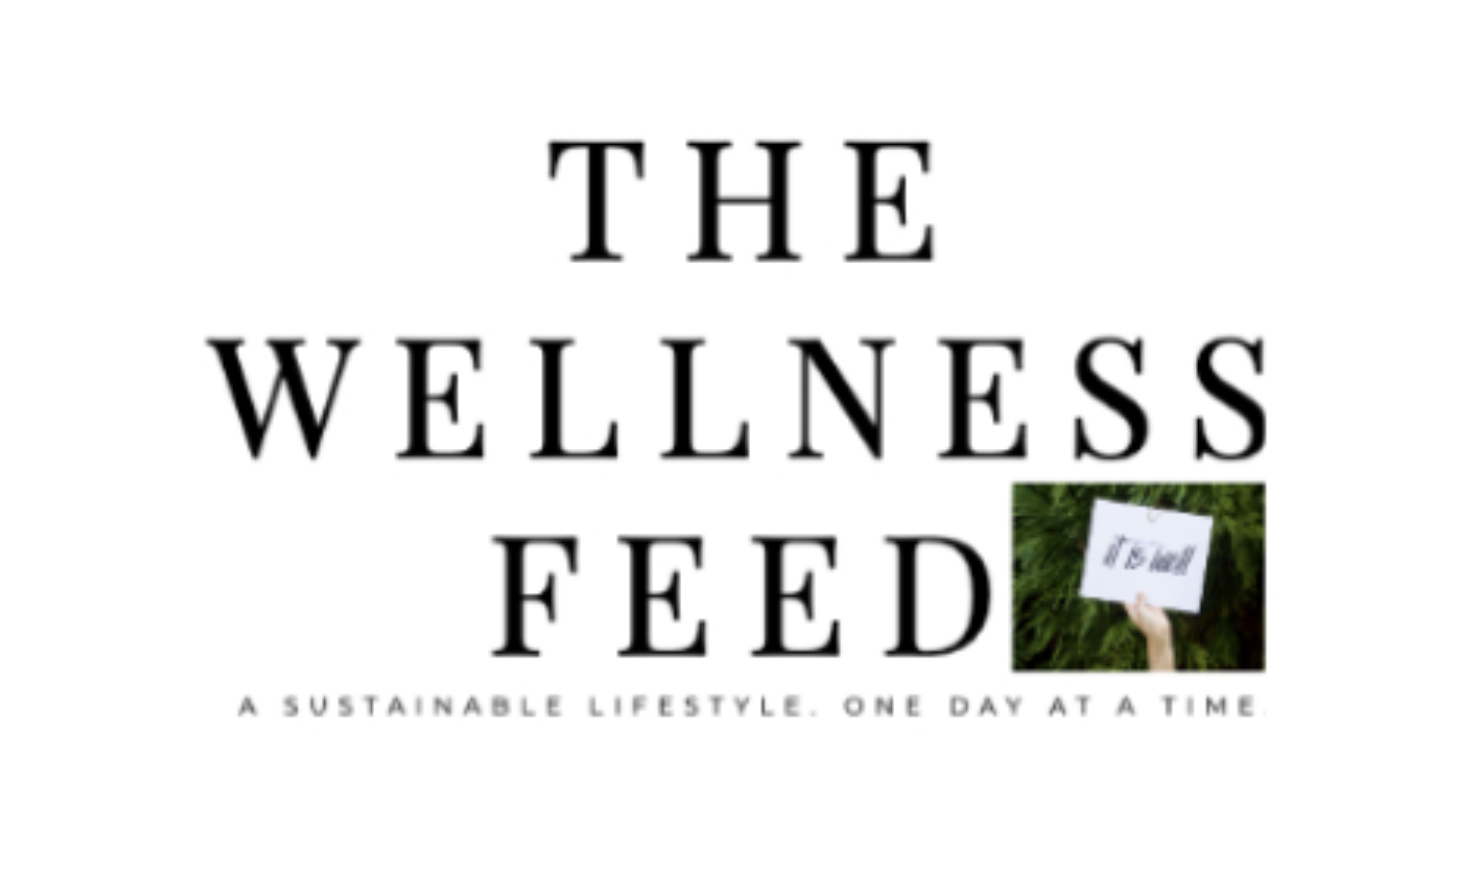 The Wellness Feed